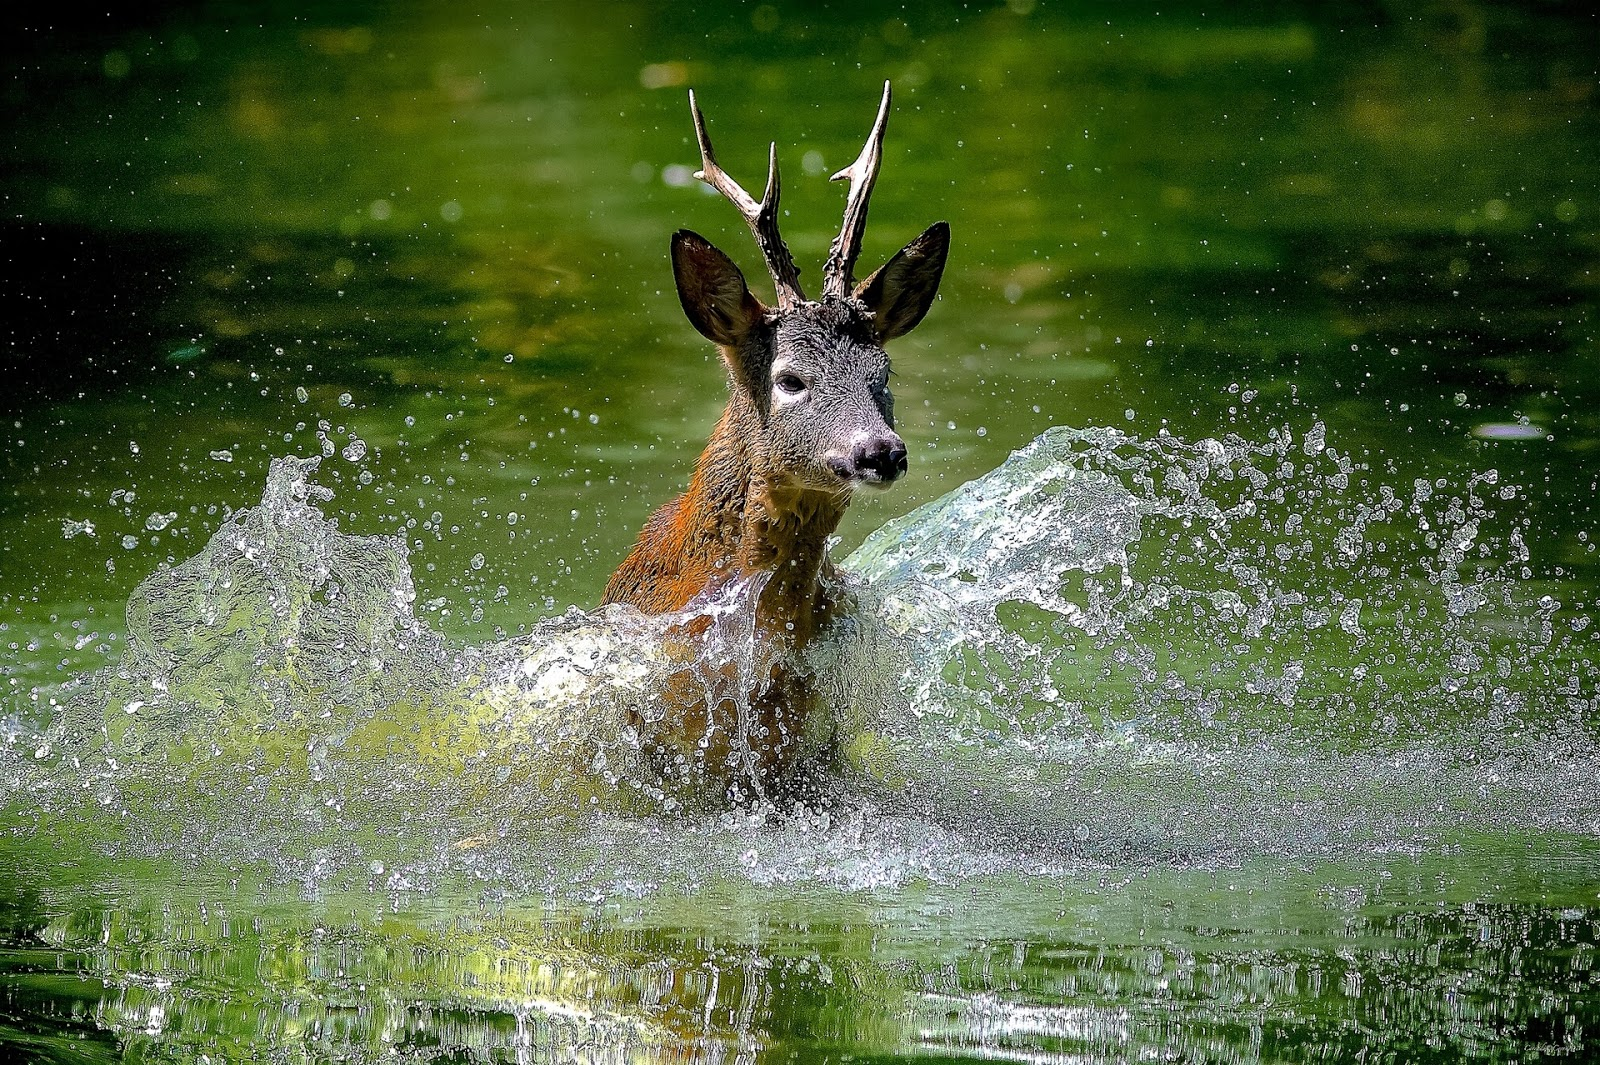 Animals Wallpaper 3d Hd 2 0 Apk Download: Beautiful Frog Wallpaper Download For Free: Beautiful Deer